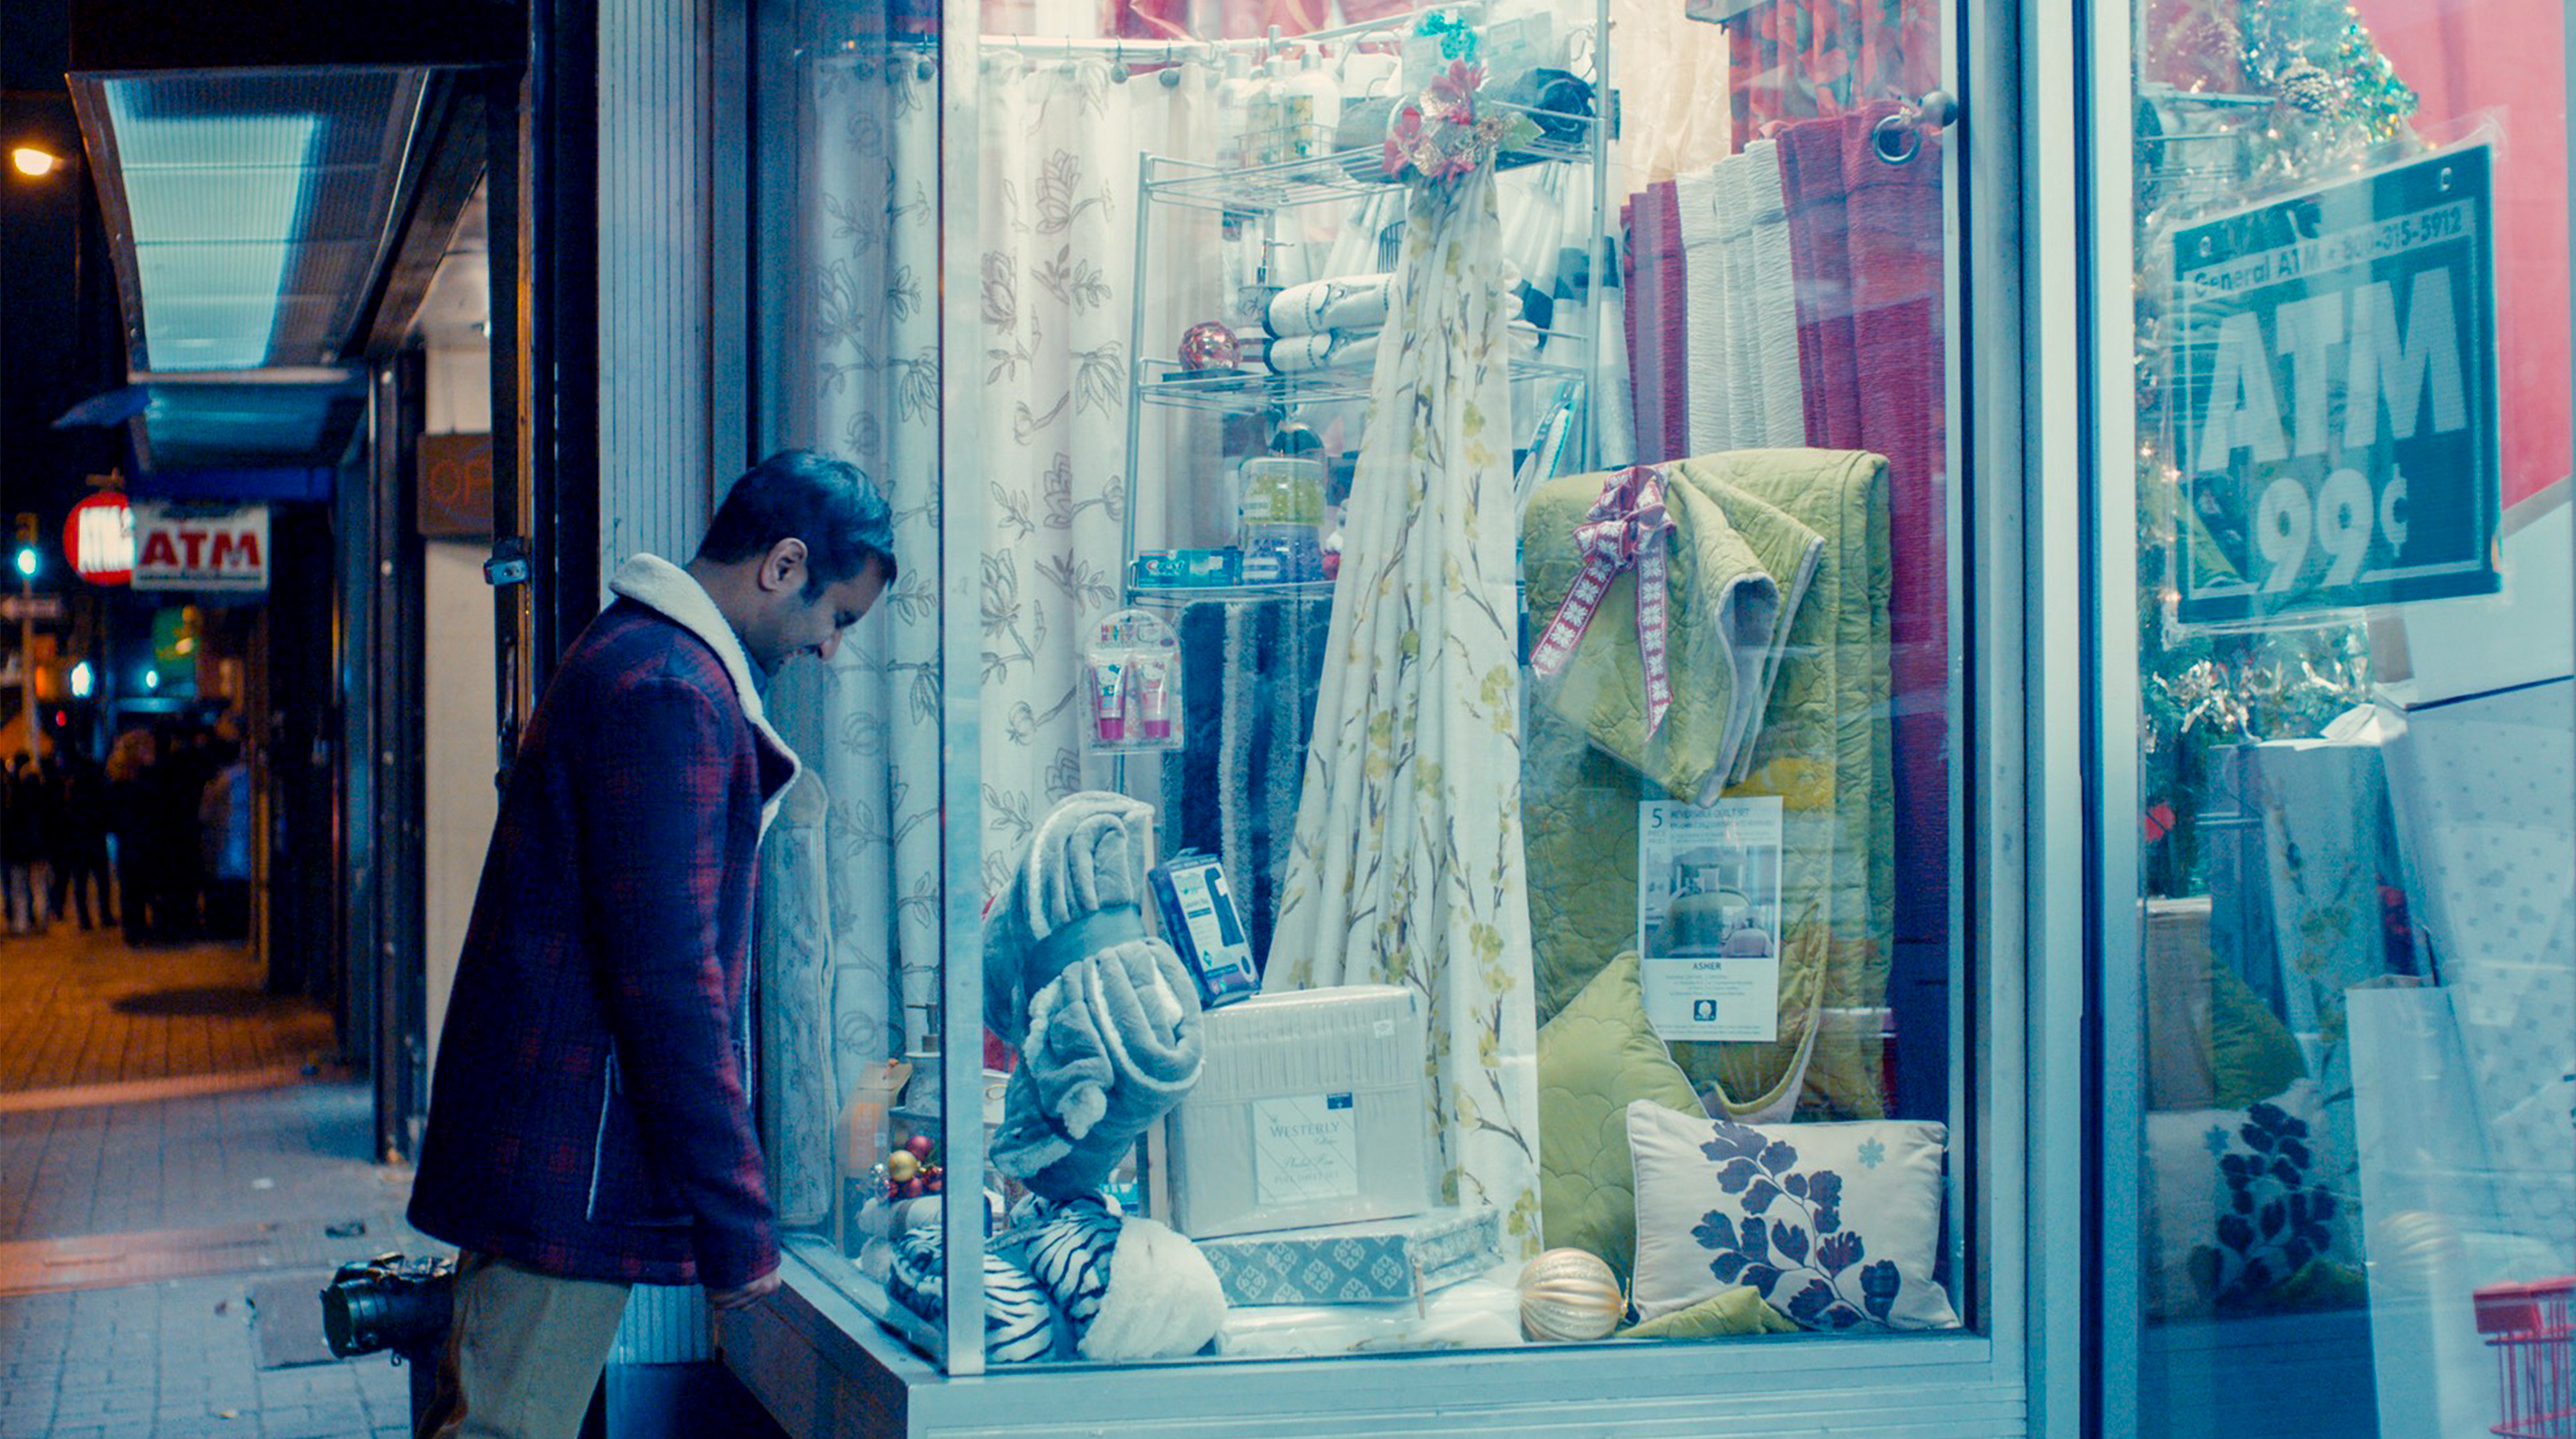 Master of None 210 - Dev bangs his head on a storefront